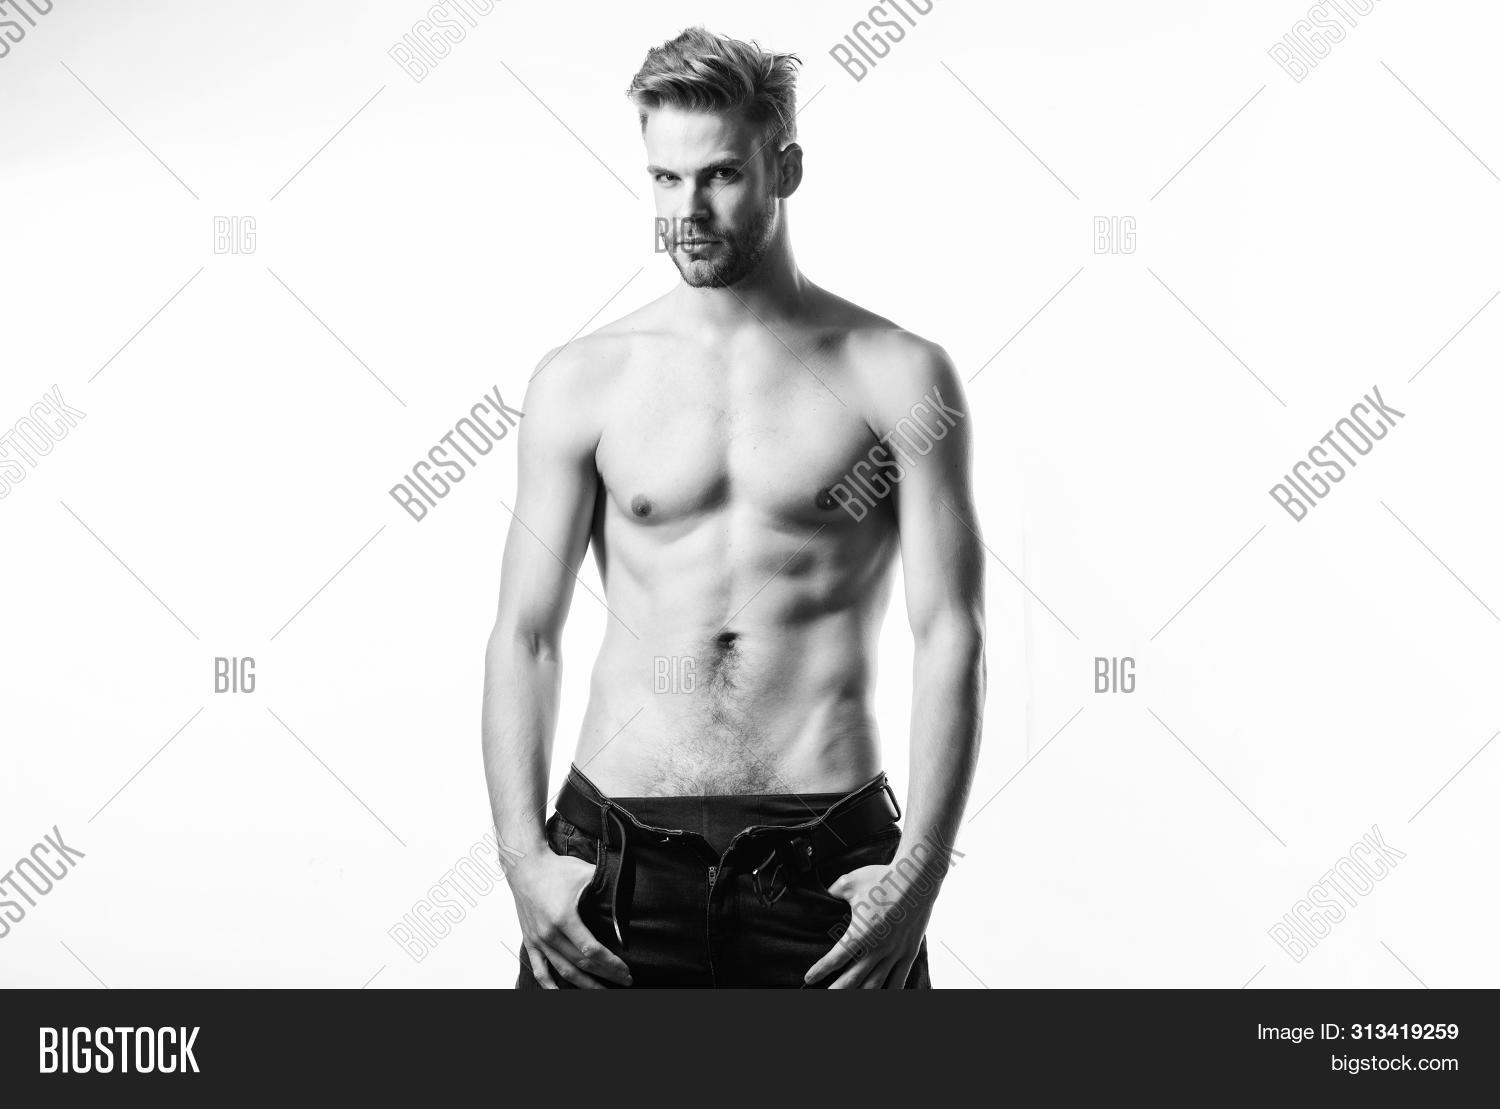 adult,attractive,attractiveness,beard,bearded,body,chest,clothes,clothing,concept,confident,desire,erotic,fashion,fashionable,feeling,flirty,full,guy,handsome,hipster,his,horny,hot,isolated,lover,macho,man,masculine,masculinity,muscular,off,performance,provoke,randy,seductive,sexi,sexy,stripped,take,torso,undressing,white,young